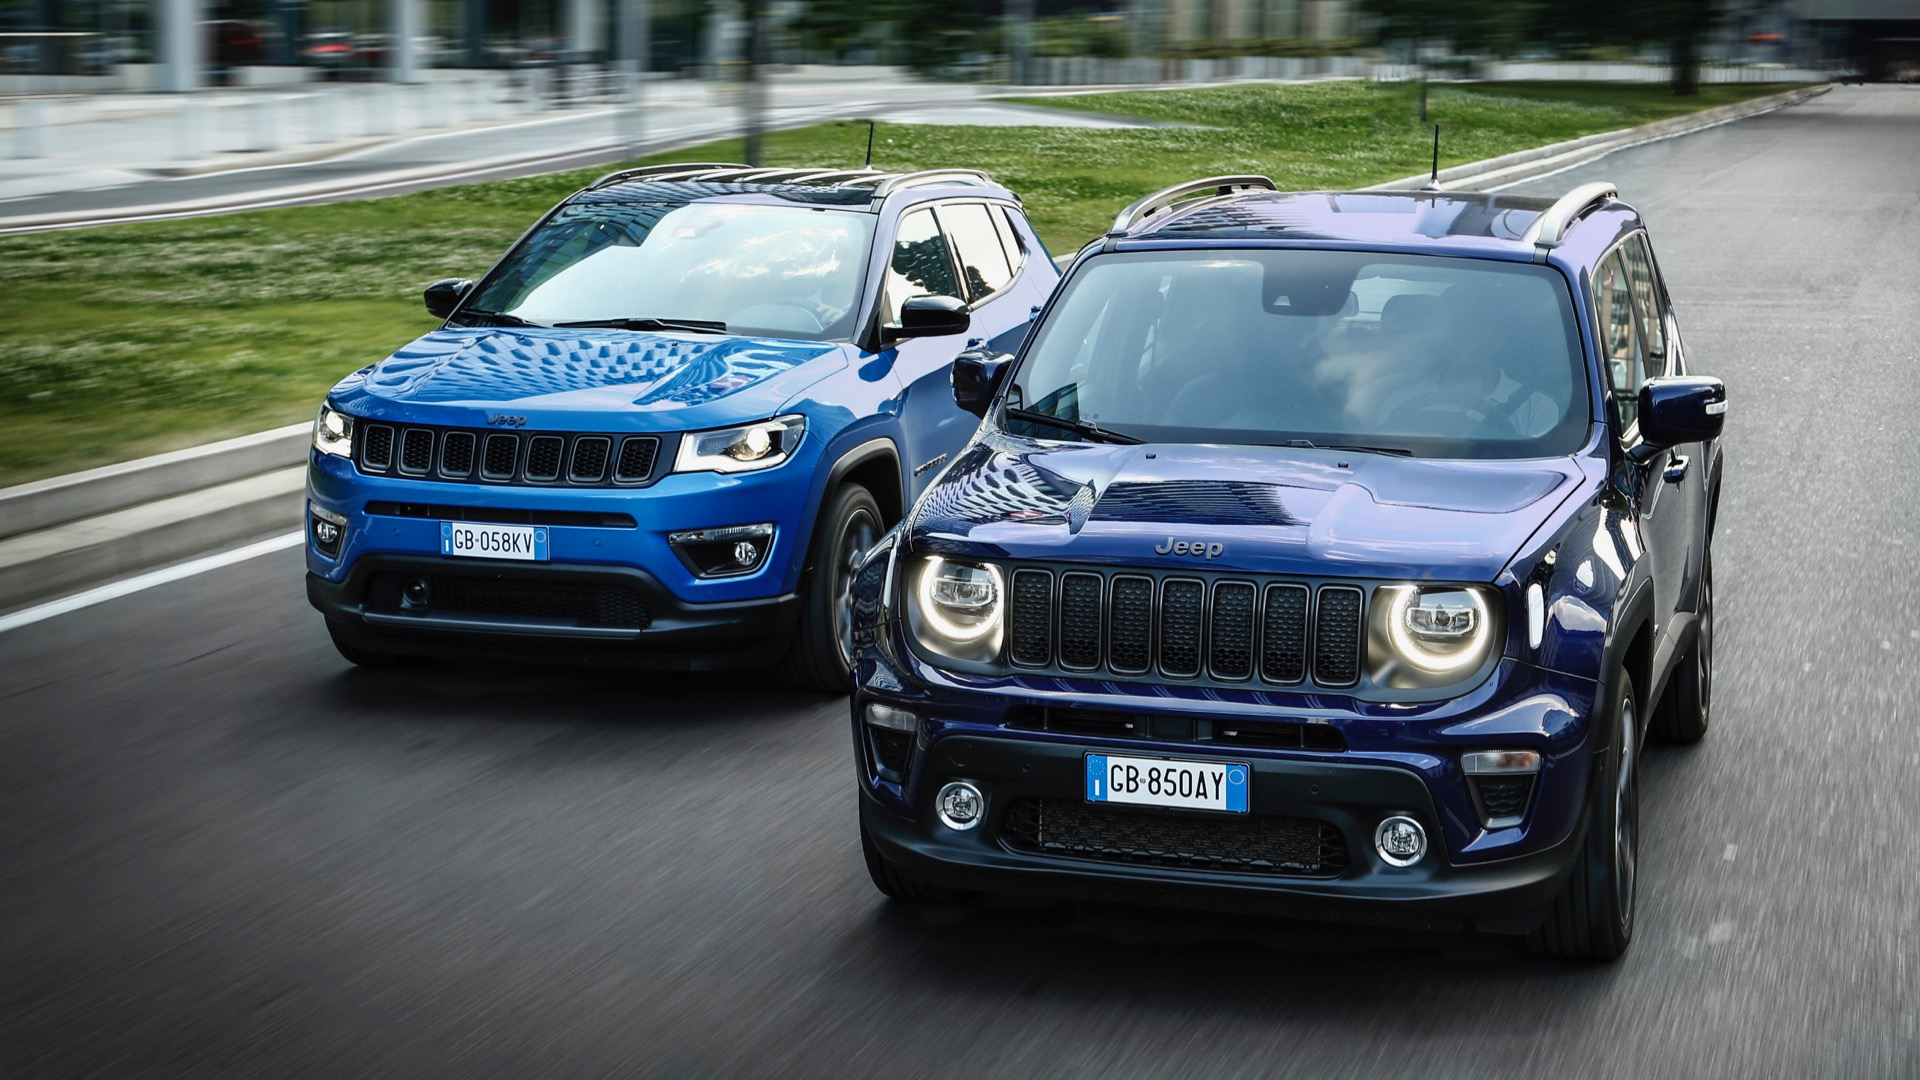 Baby Jeep built in Poland likely to be brand's first EV